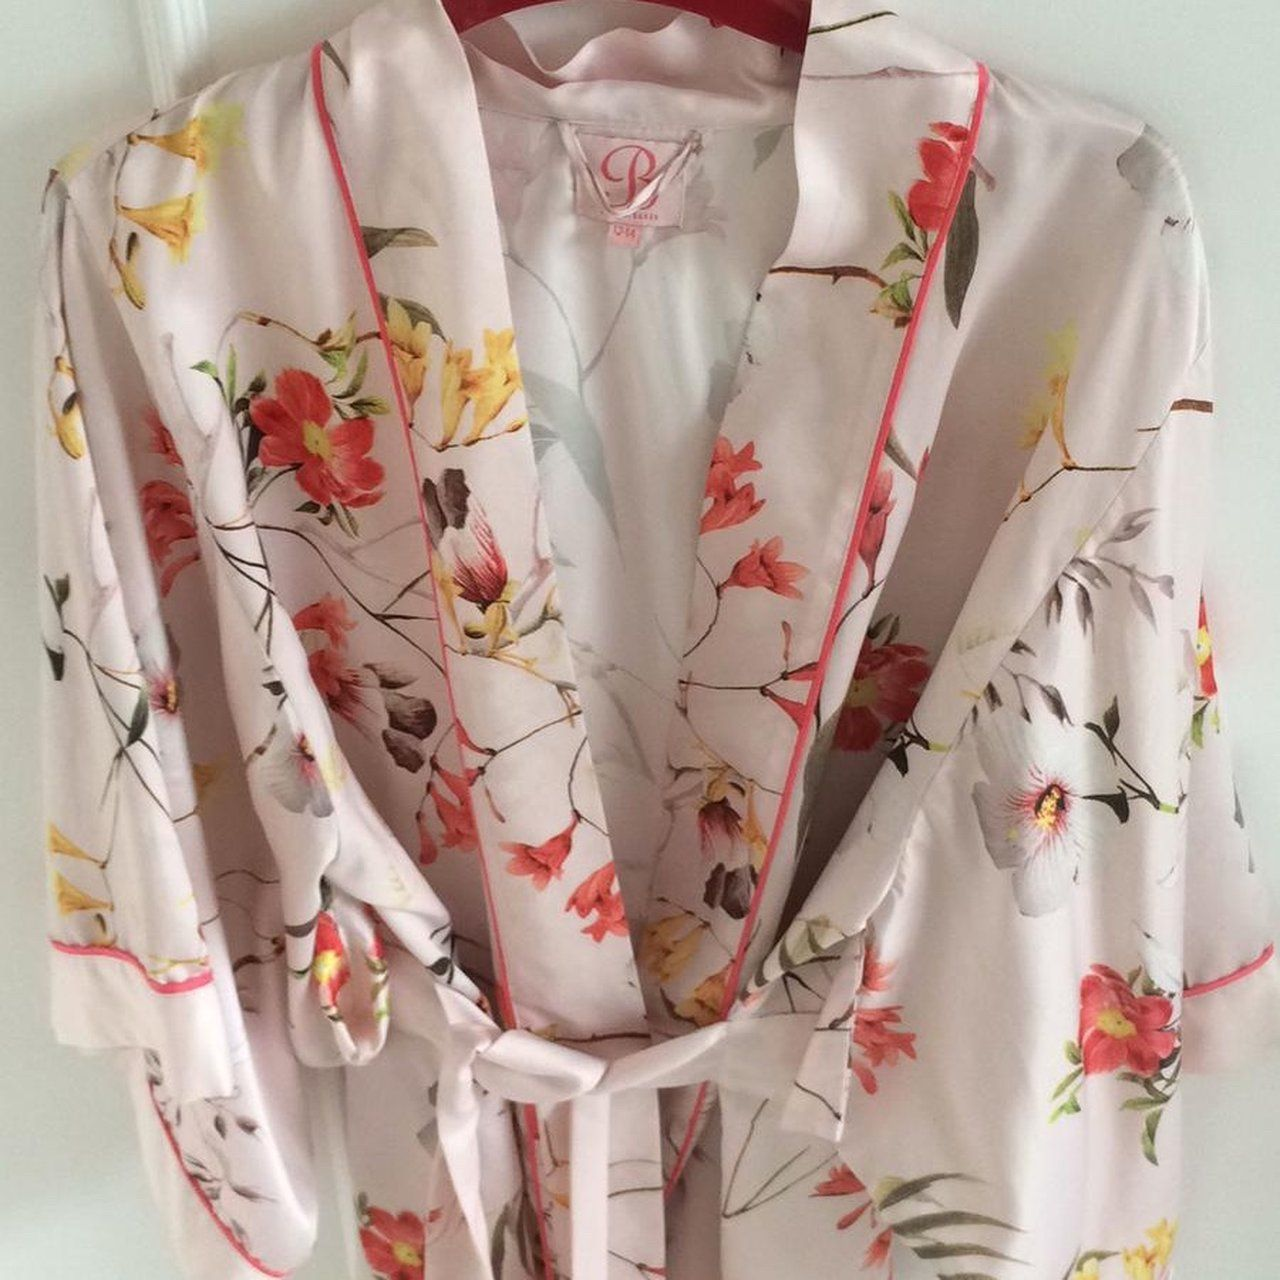 519bee91d60d Ted Baker dressing gown for sale. Light and pretty. Size but - Depop